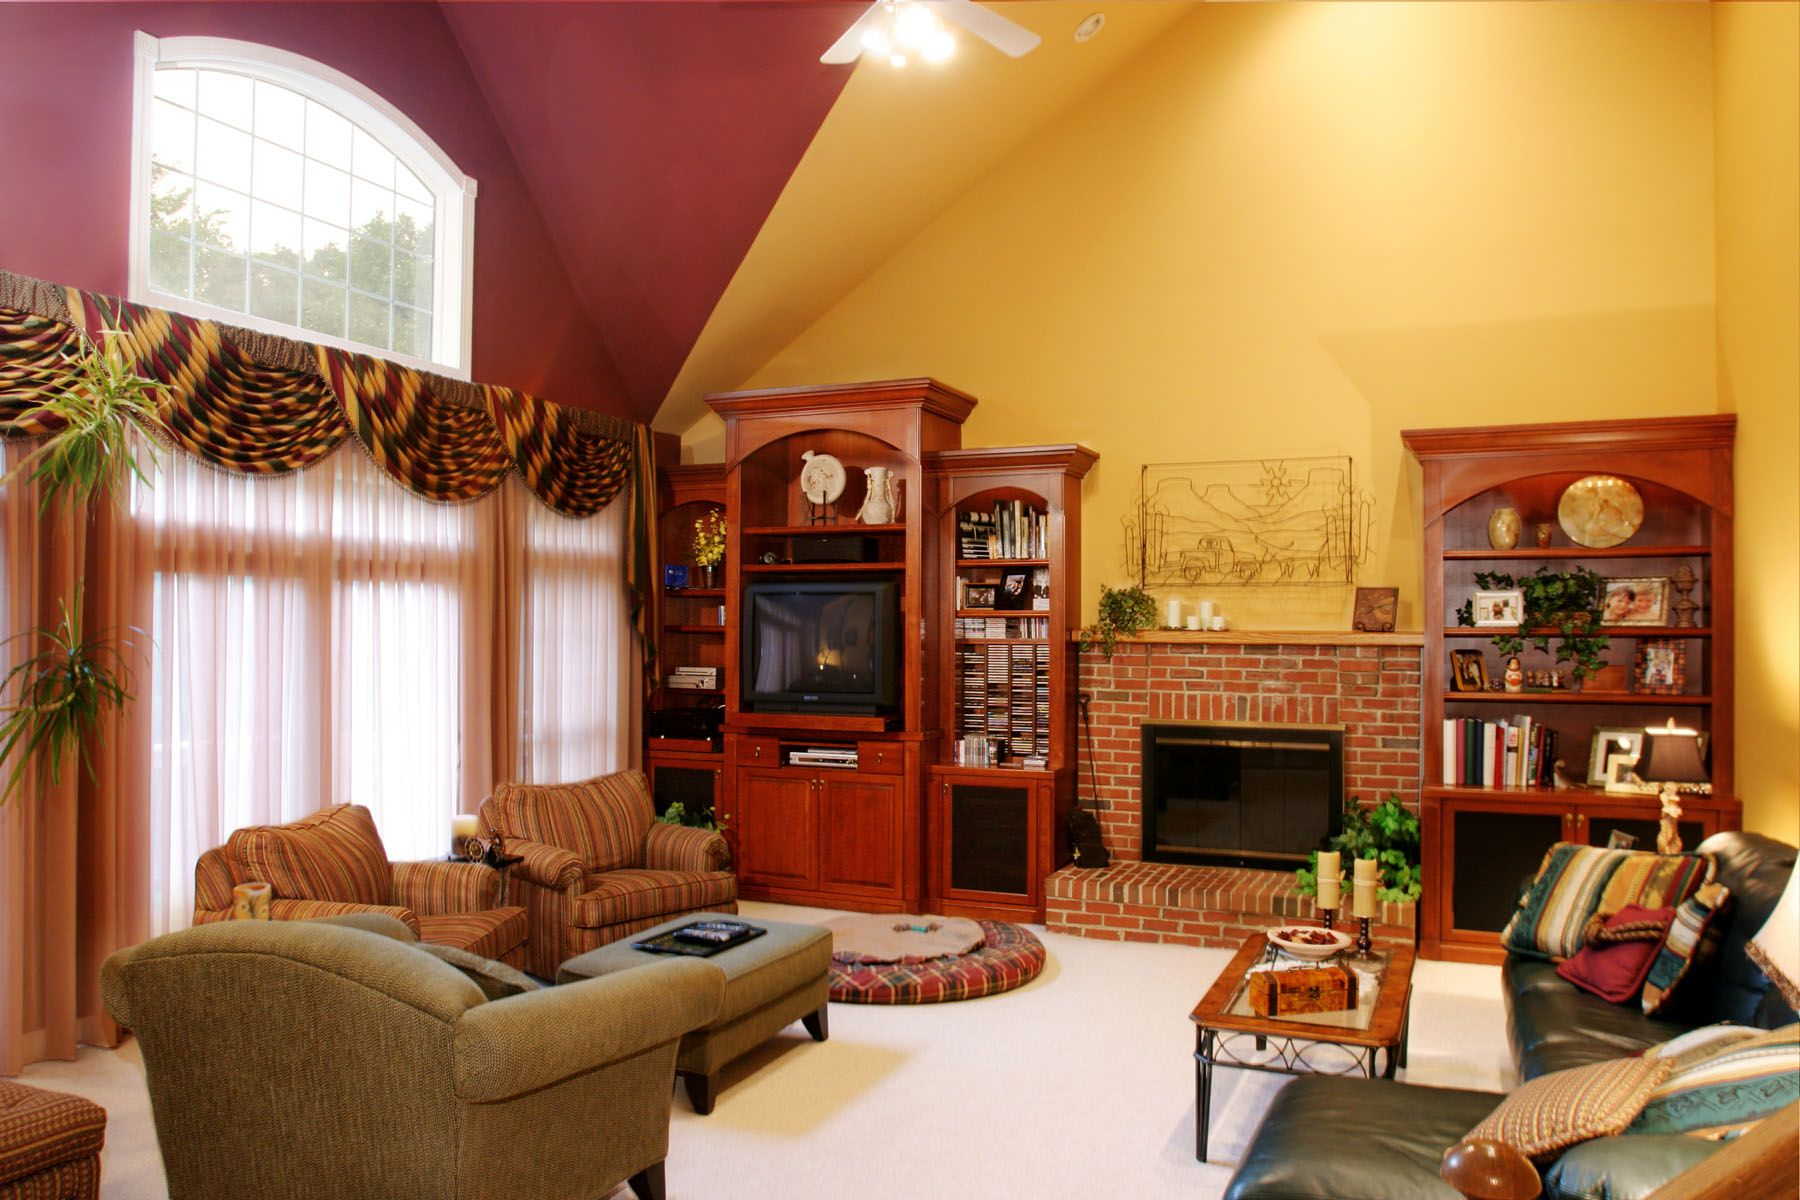 Living Room Appealing Yellow Wall Colors Panels Also Awesome Curio Cabinet And Comfortable Grey Sofas And Rustic Fireplace In Family Room Decorating Ideas